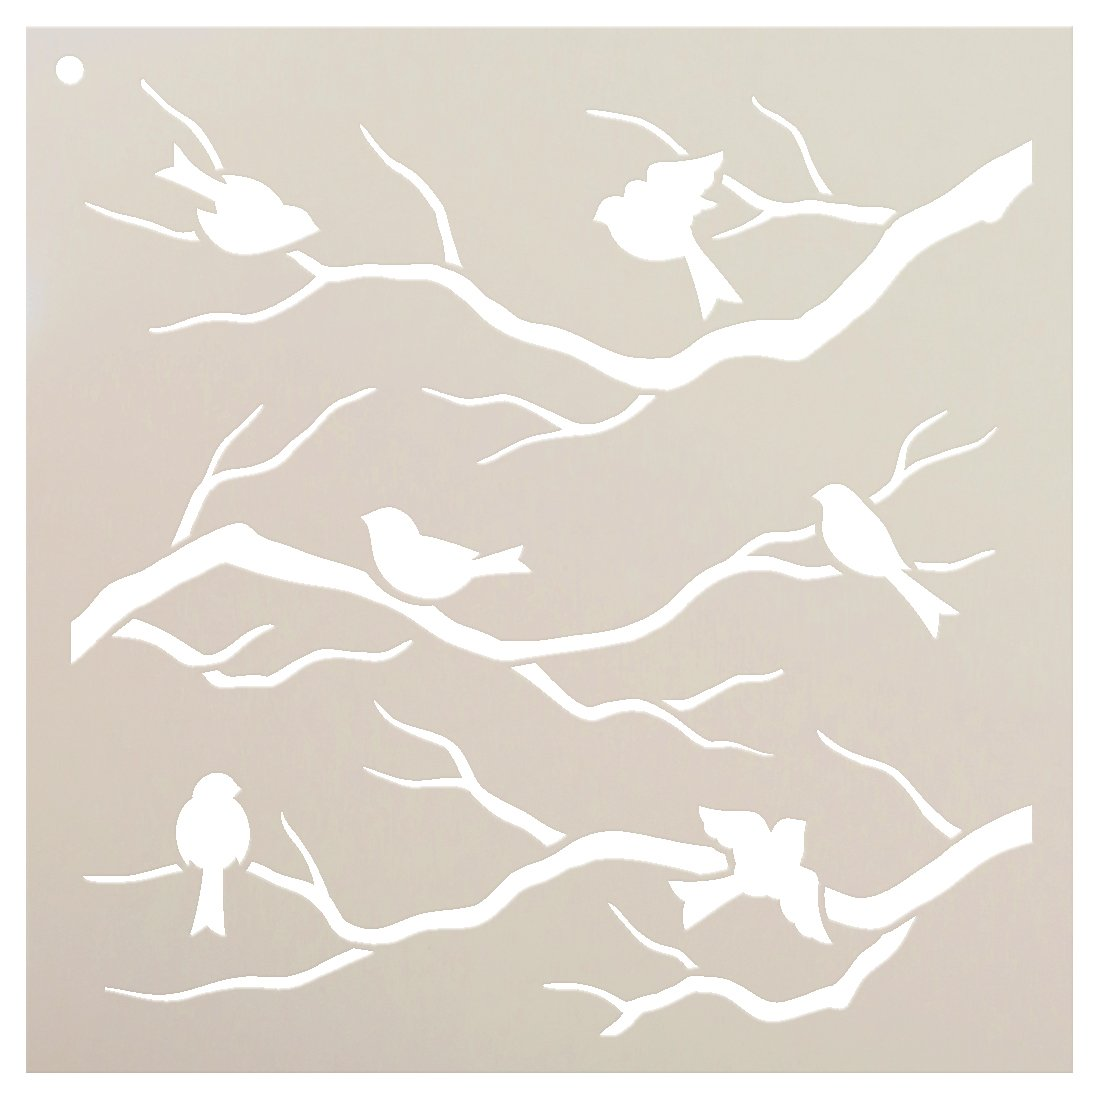 "Birds & Branches Stencil by StudioR12 | Reusable Mylar Template | Crafters and Sign Makers can Paint DIY Nature Home Decor - Furniture - Scrapbook- Cards - Choose Size (9"" x 9"")"